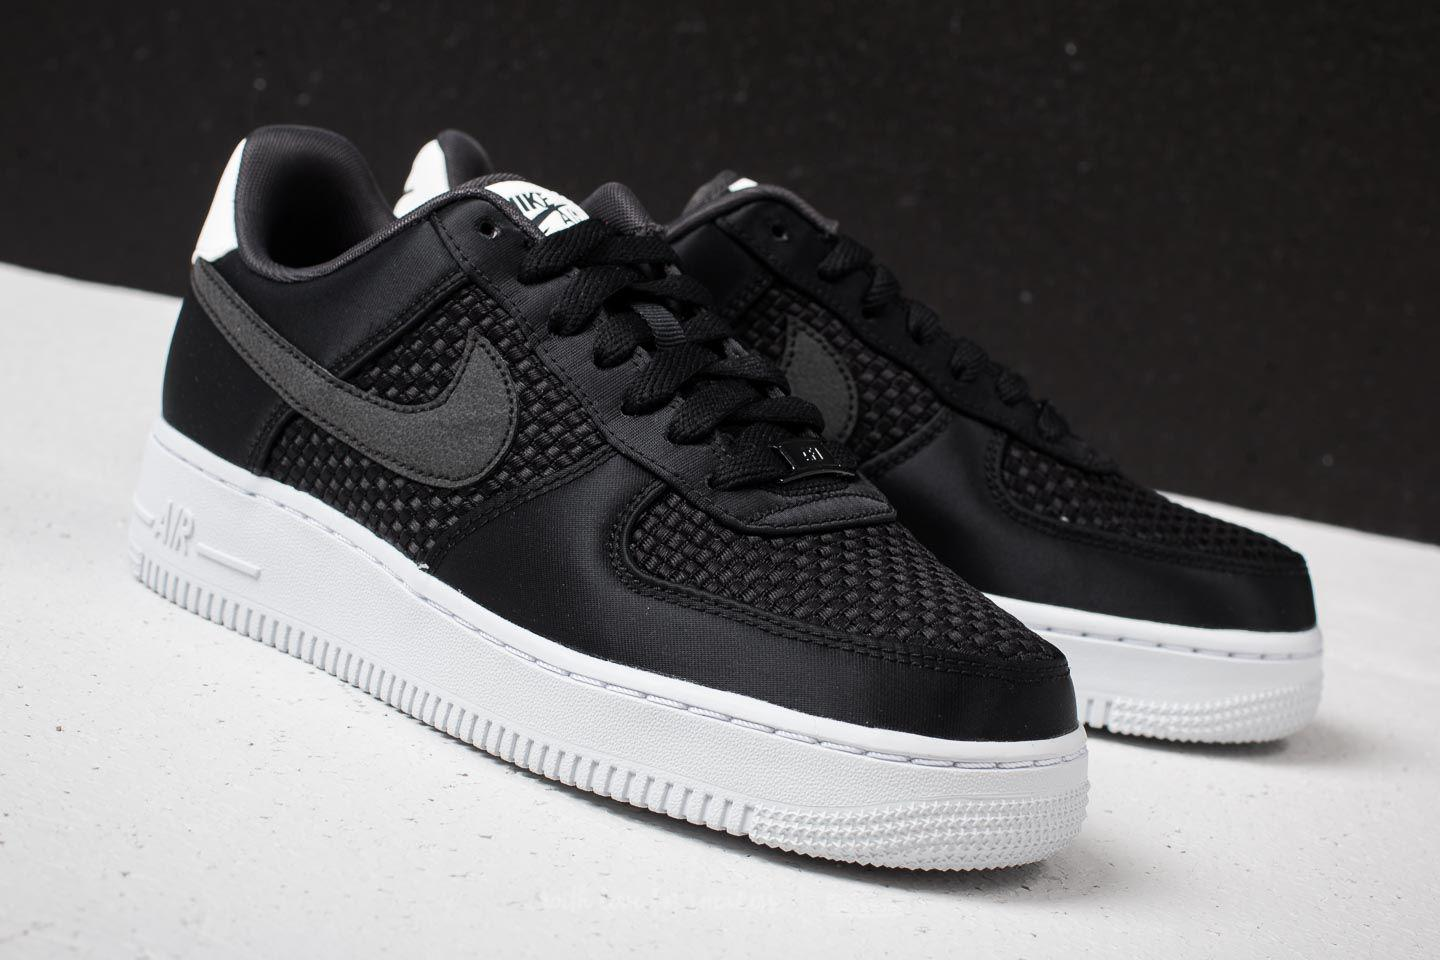 buy popular fa2f0 c4aec aliexpress nike air force 1 07 lv8 68630 9e96e  australia gallery.  previously sold at footshop womens nike air force bd9bc 37cce